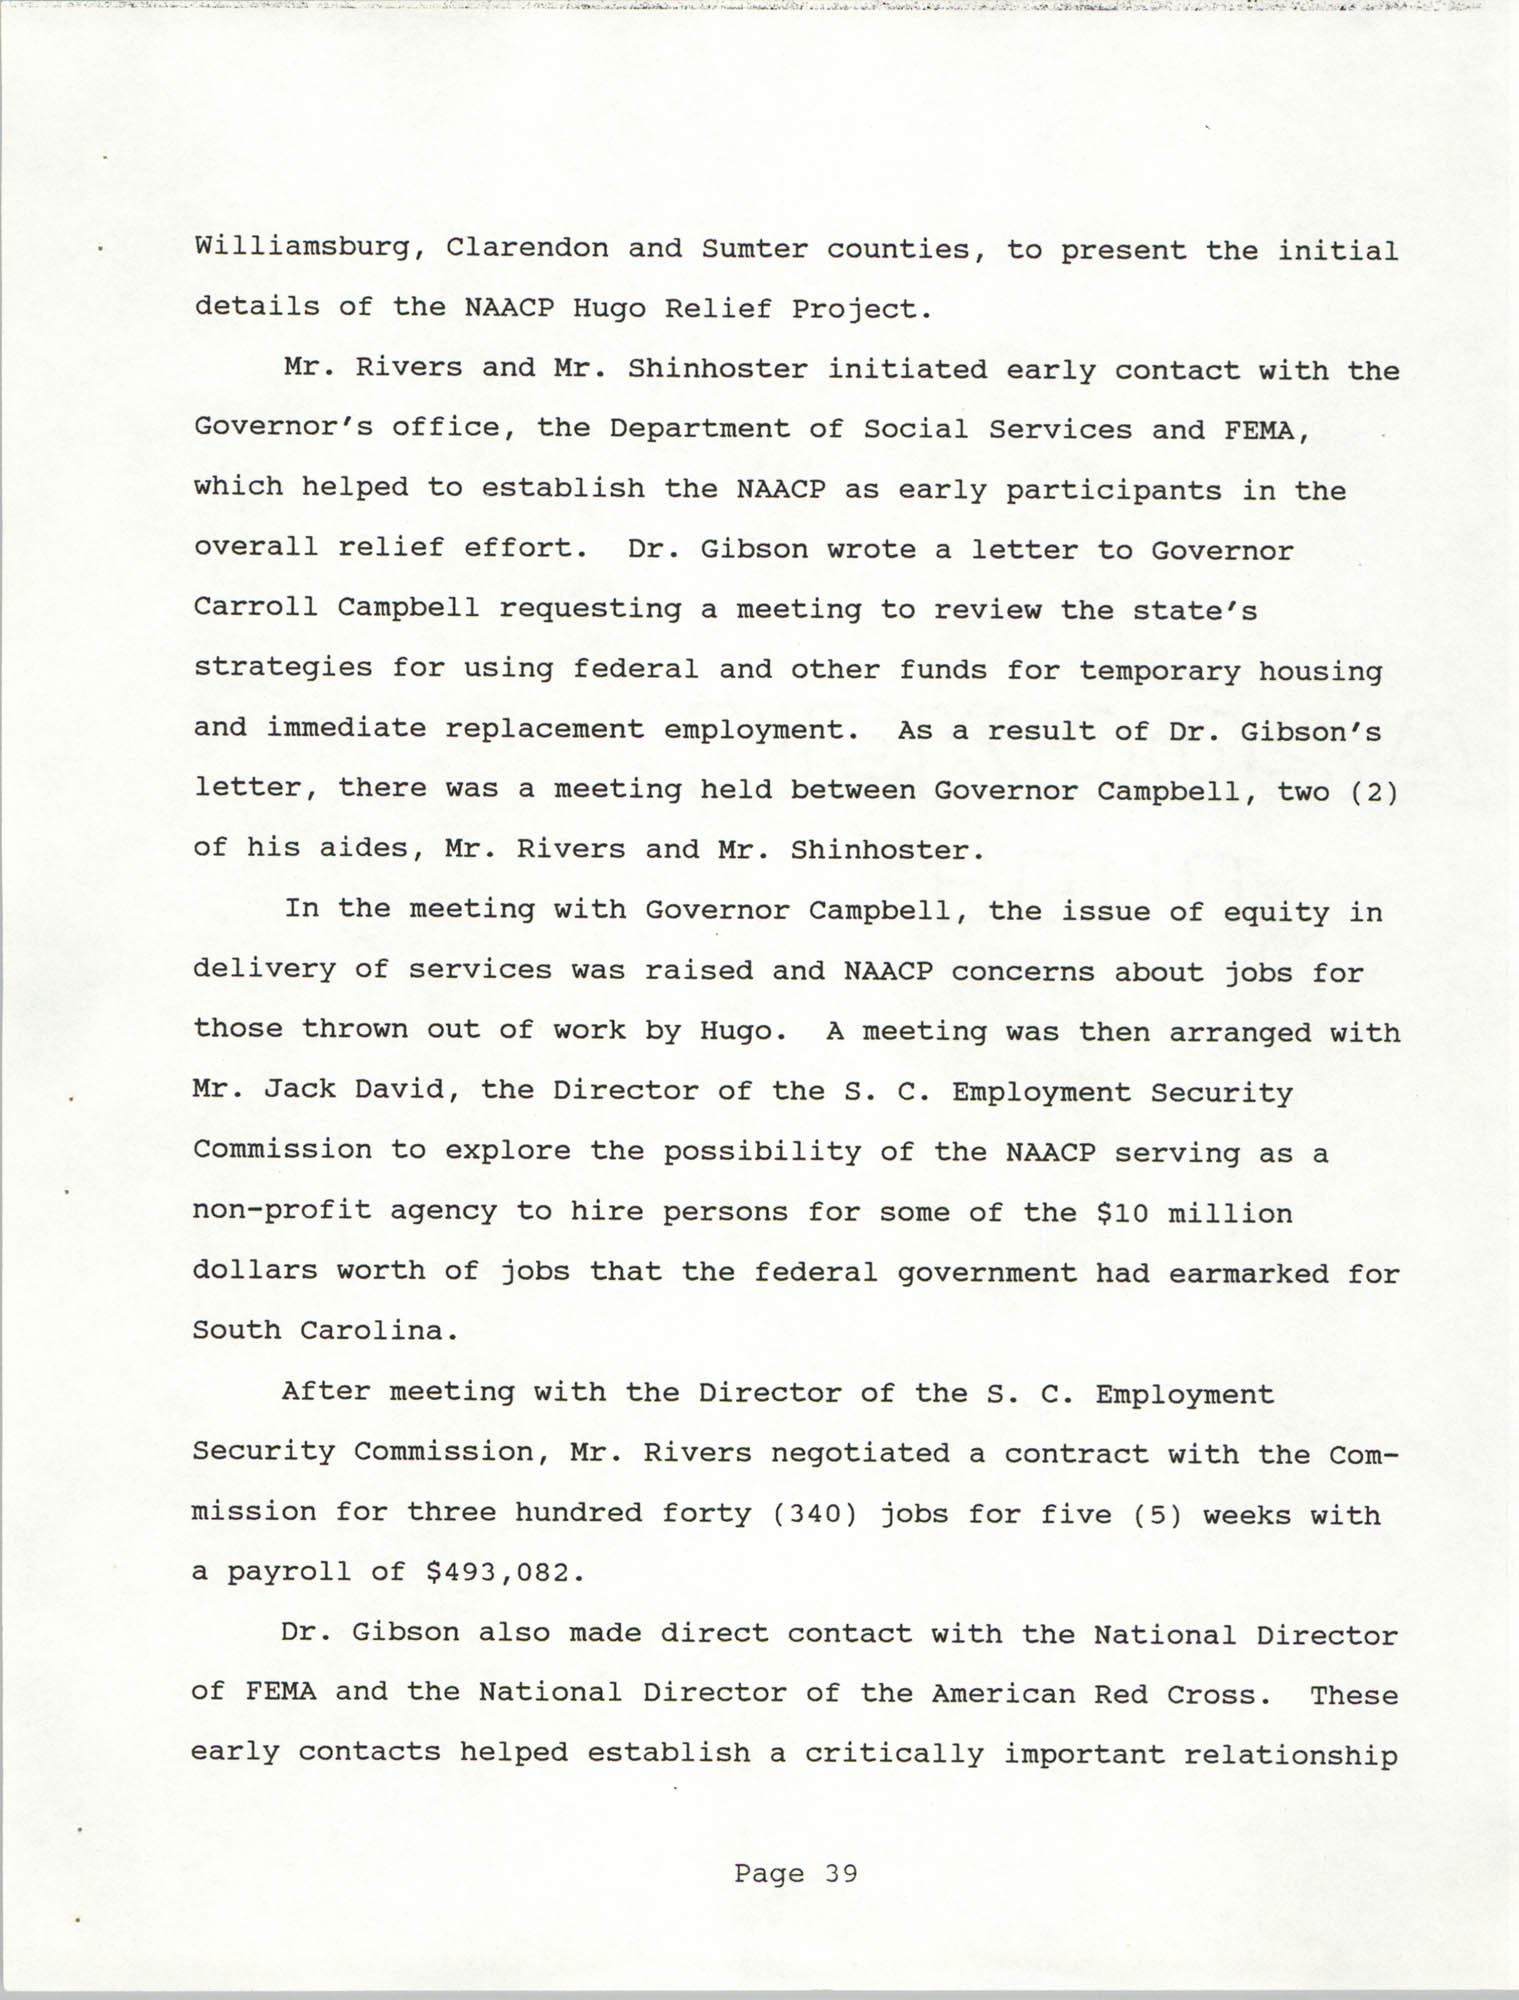 South Carolina Conference of Branches of the NAACP, 1990 Annual Report, Part Two, Page 39